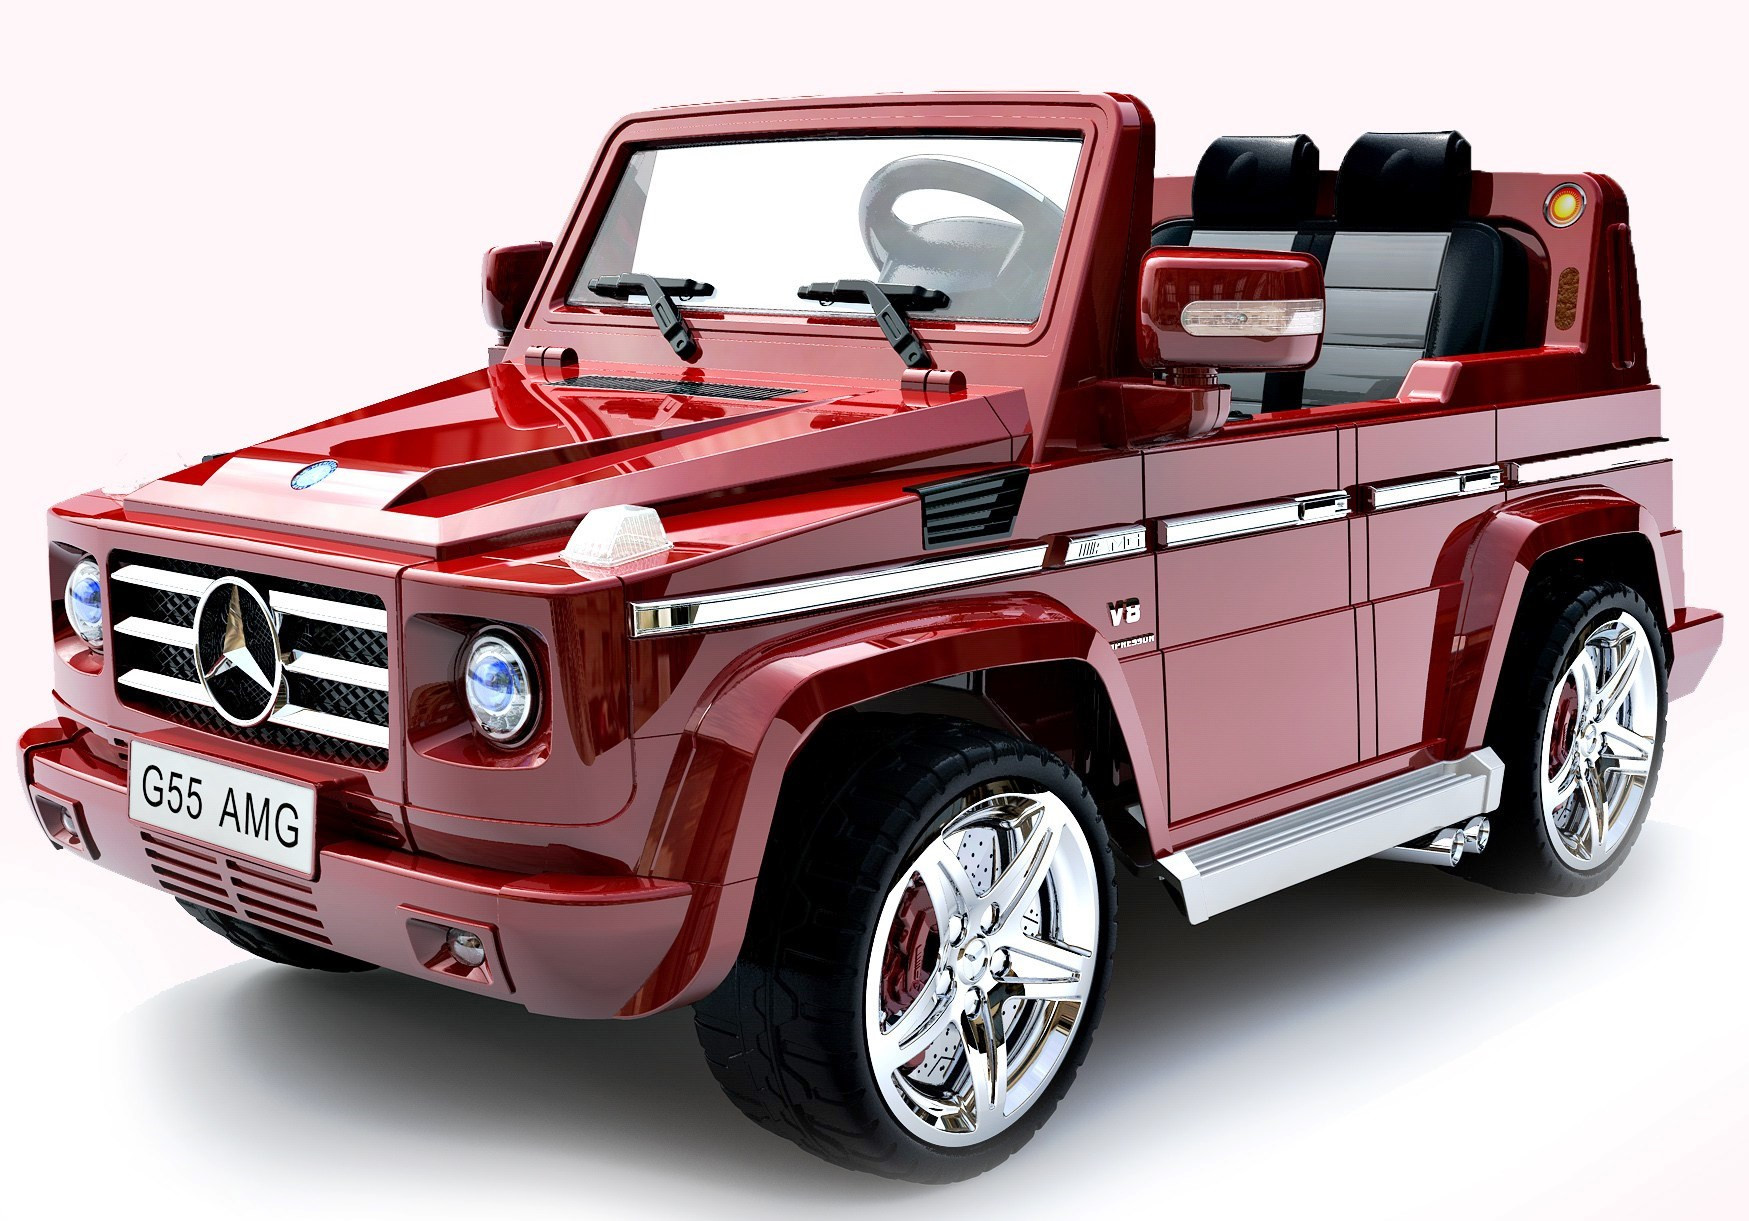 mercedes g55 amg ride-on - metallic red